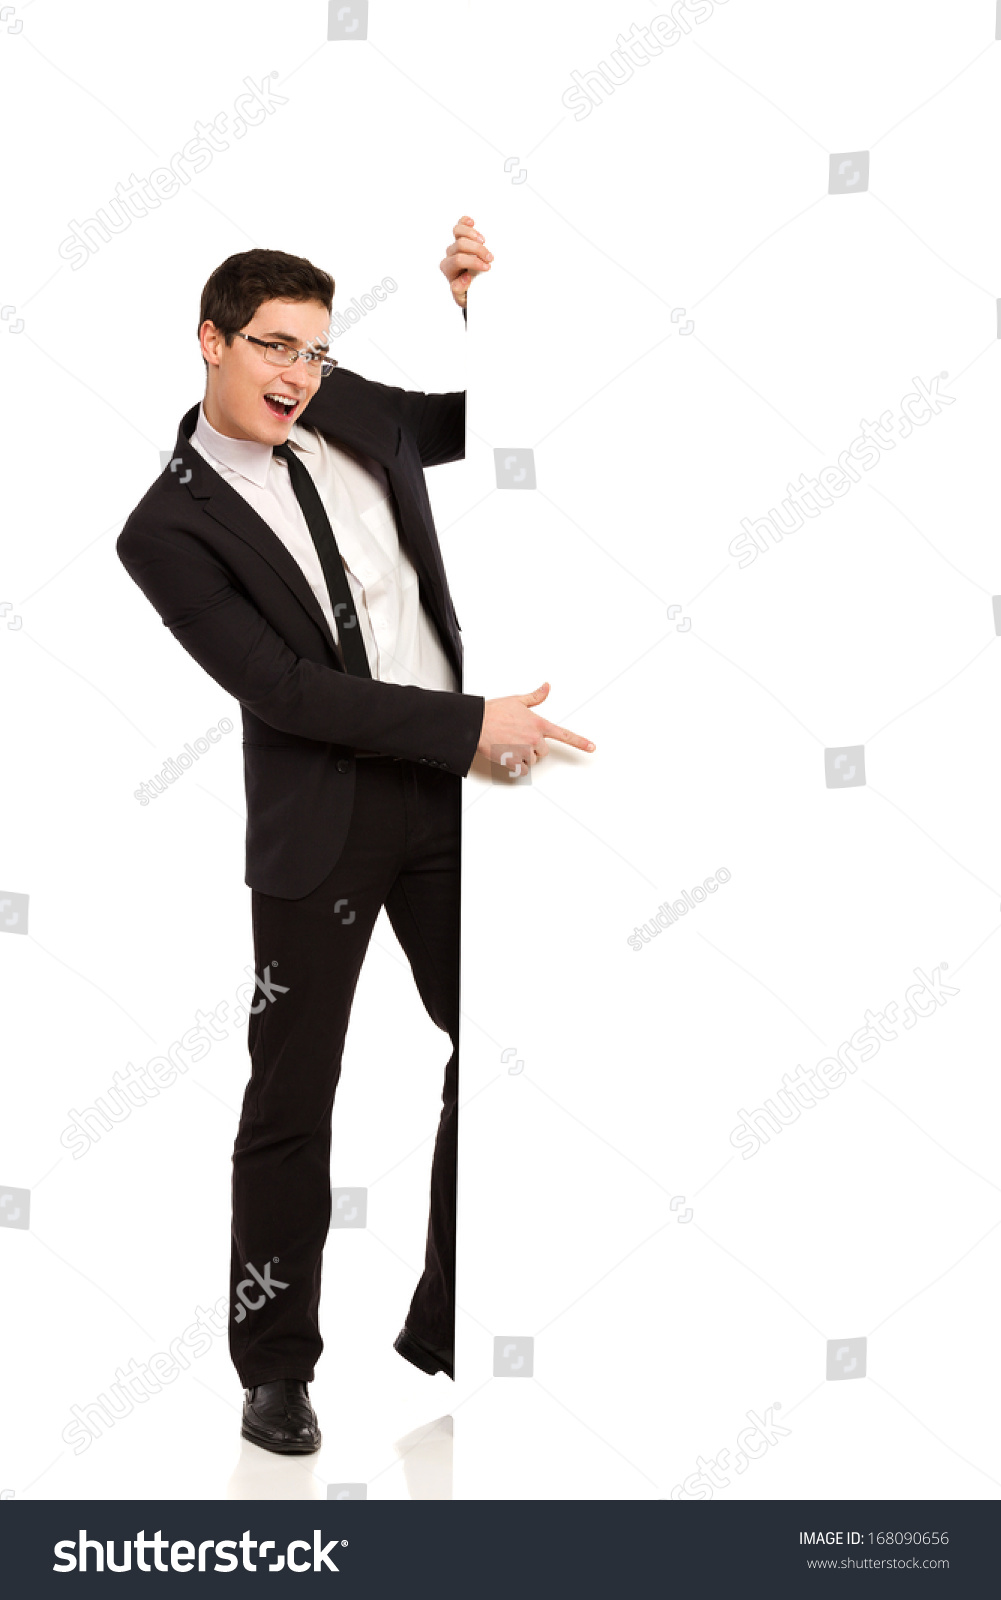 f8aaa37324 Young man in black suit pointing at the banner. Full length studio shot  isolated on.